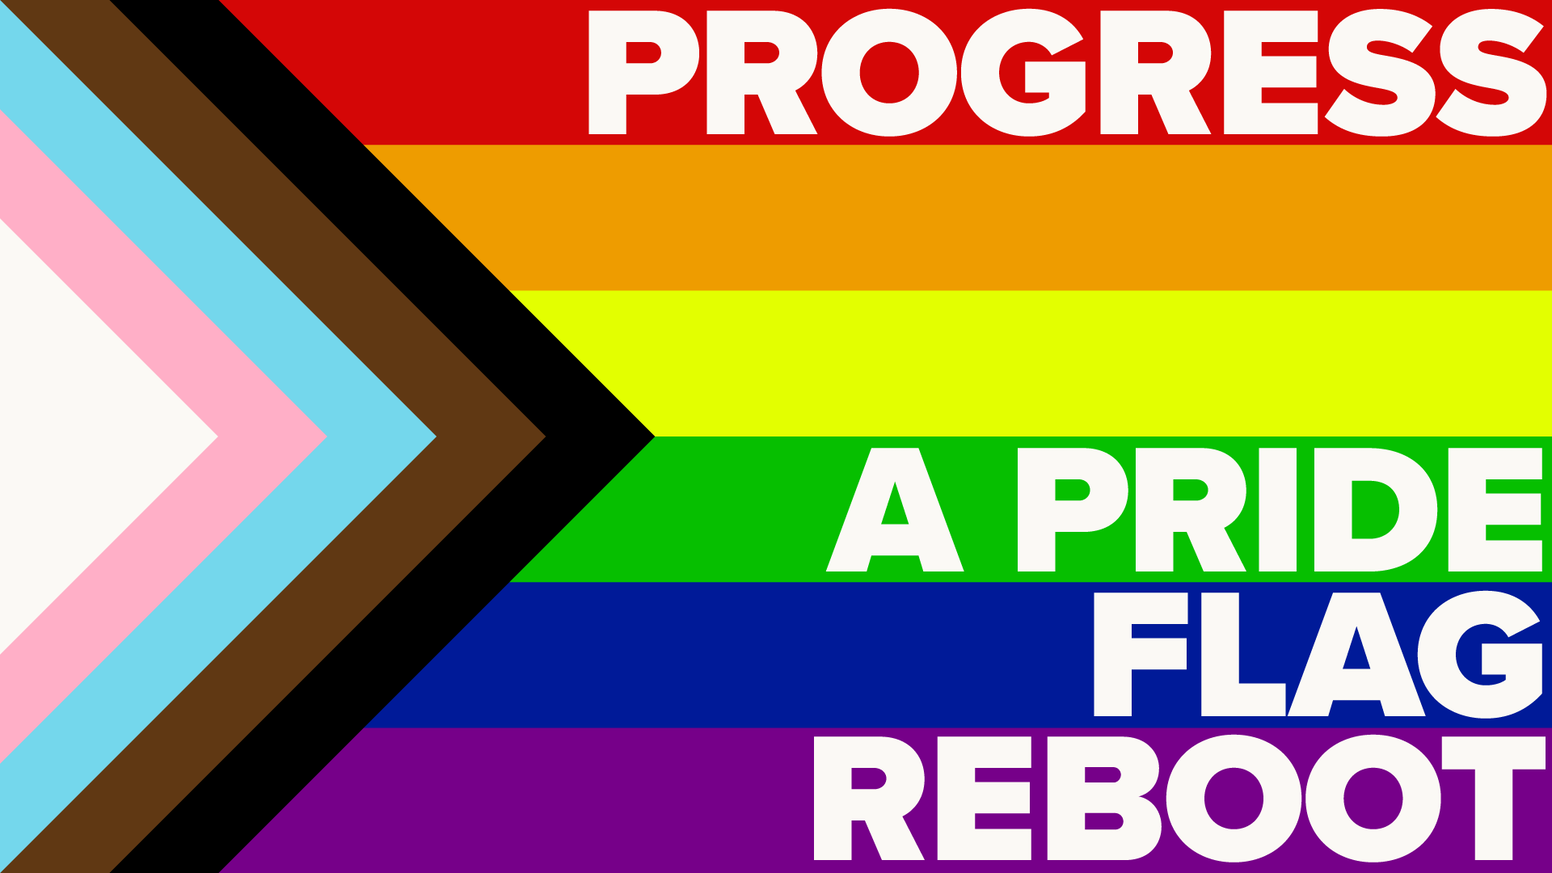 A reboot of the LGBTQ Pride flag with an emphasis on inclusion and progression.